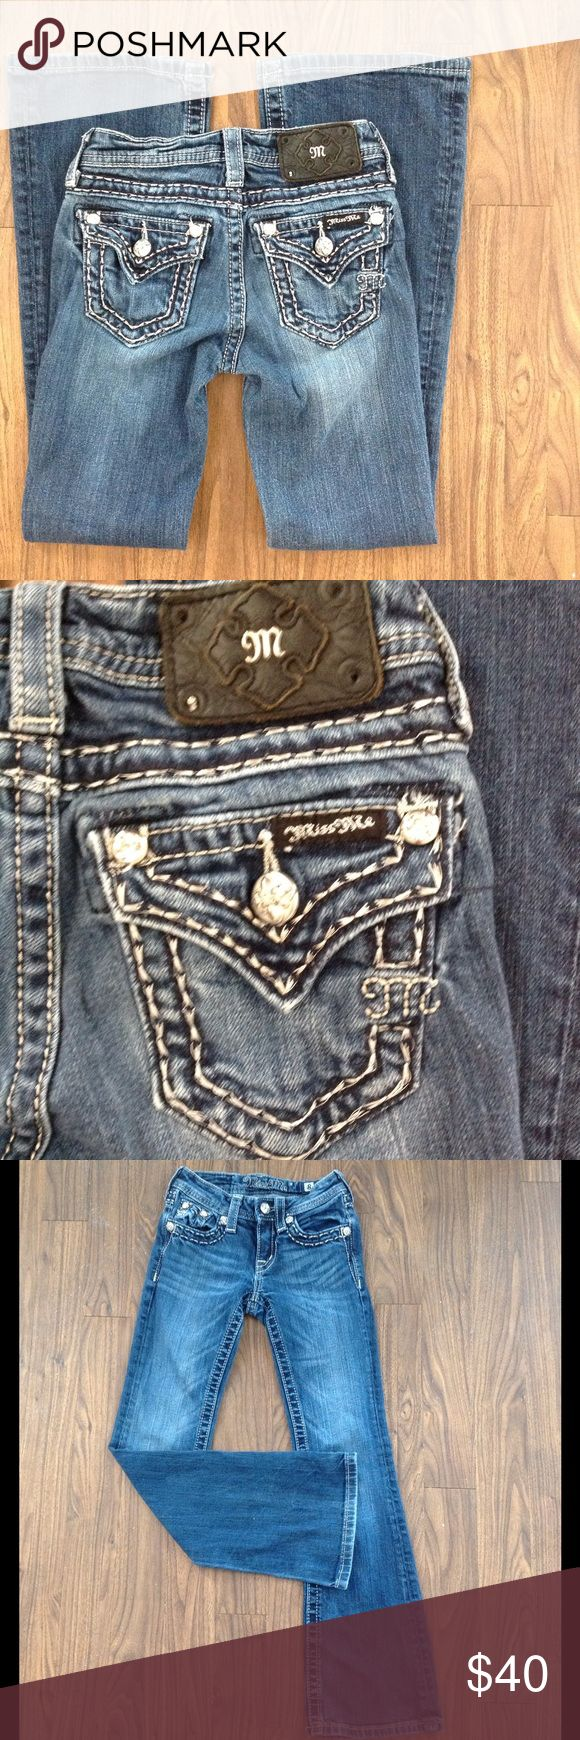 Girls miss me jeans boot cut bling denim pockets Miss me jeans. Bling back pockets. Wide stitching. Bootcut style. Dark wash. Size 8 girls. Missing four stones around the leather patch. See last pic.Good preowned condition. Miss Me Bottoms Jeans